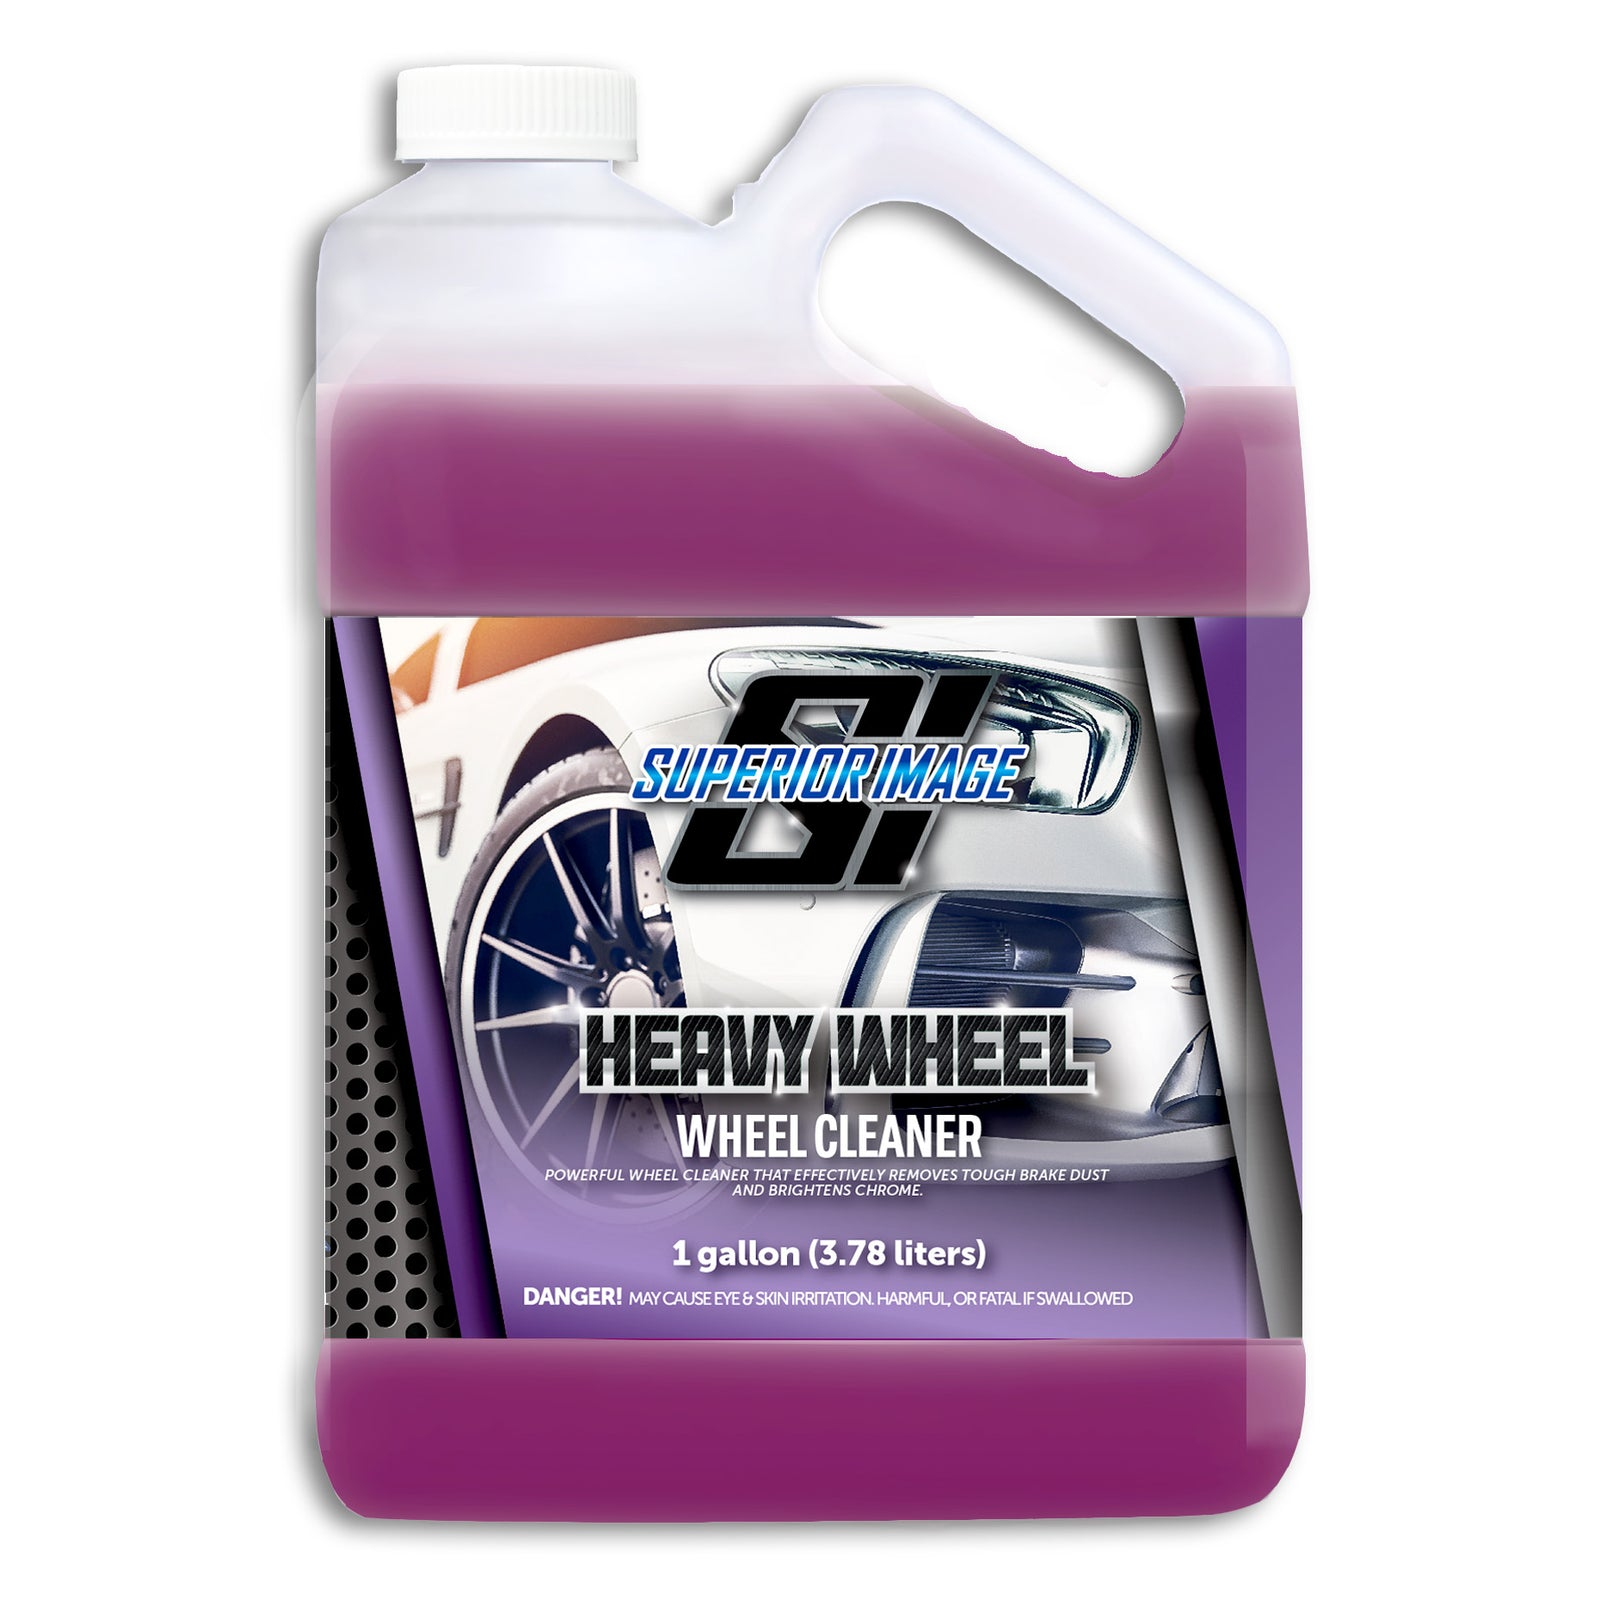 Heavy Wheel Non-Acid Wheel Cleaner